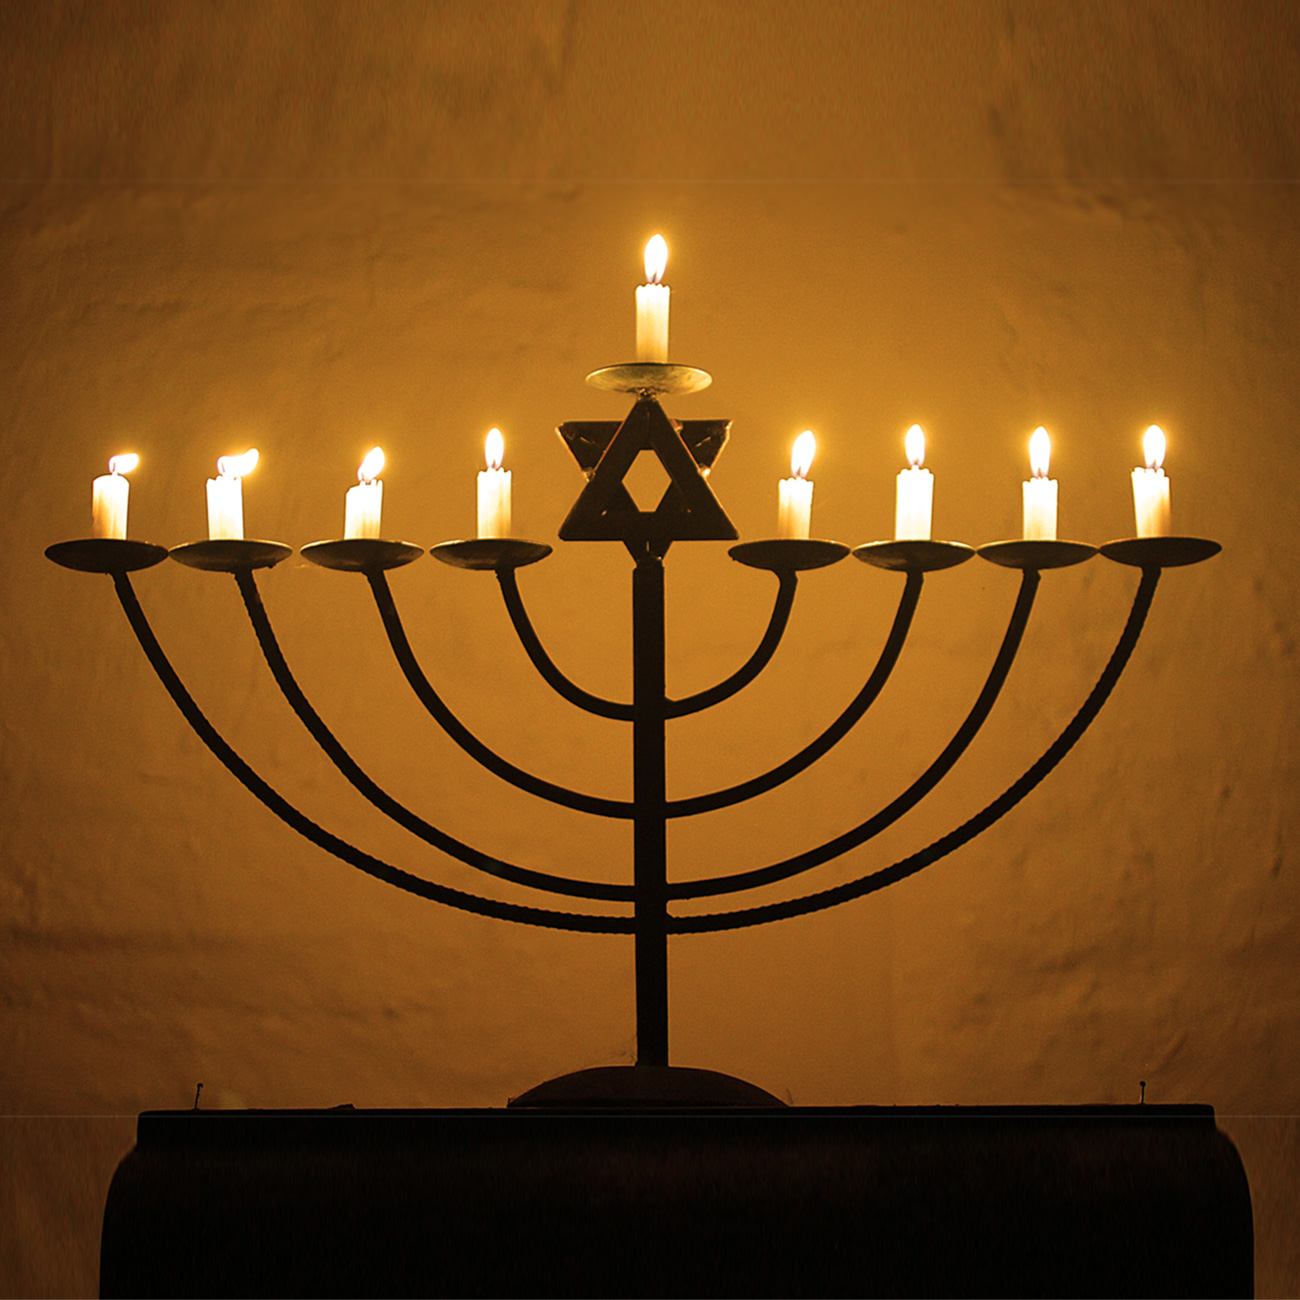 The Hanukiah has been lit for another night of Hanukkah. Many families in the Jewish community will light their Hanukiahs for the holiday this December.